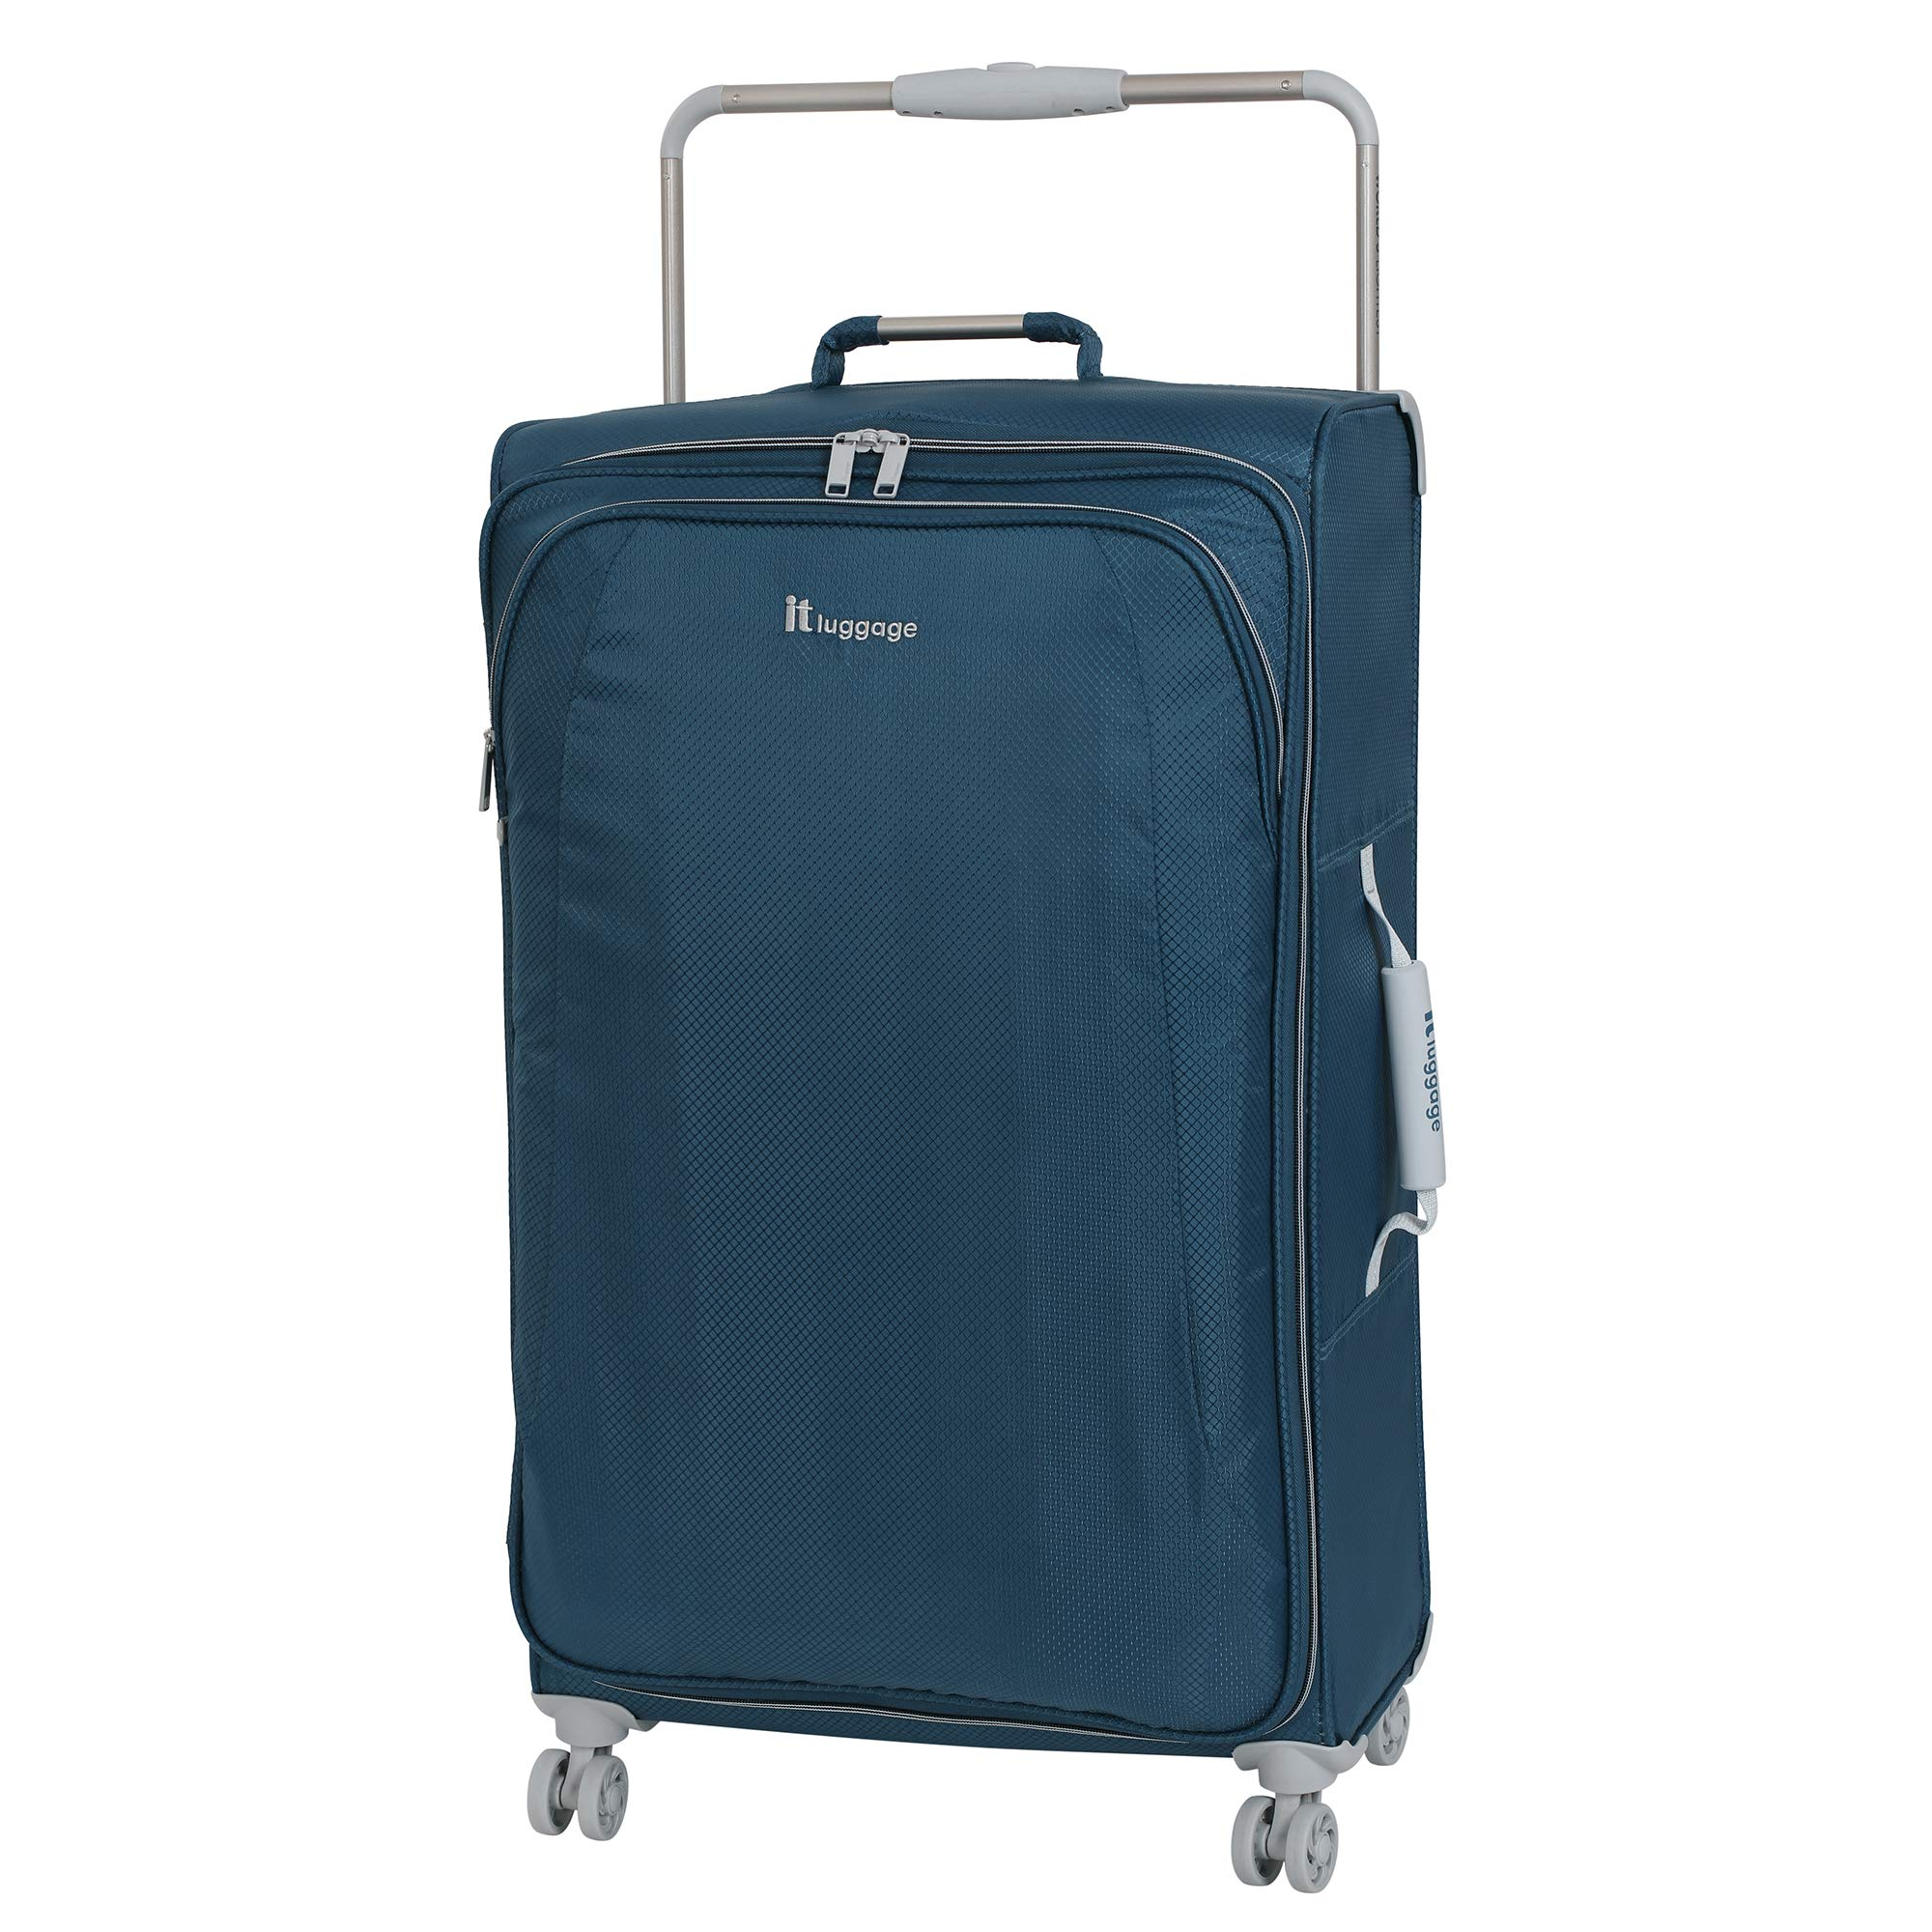 IT Luggage 27.6'' World's Lightest 8 Wheel Spinner, Ashes with Vapor Blue Trim